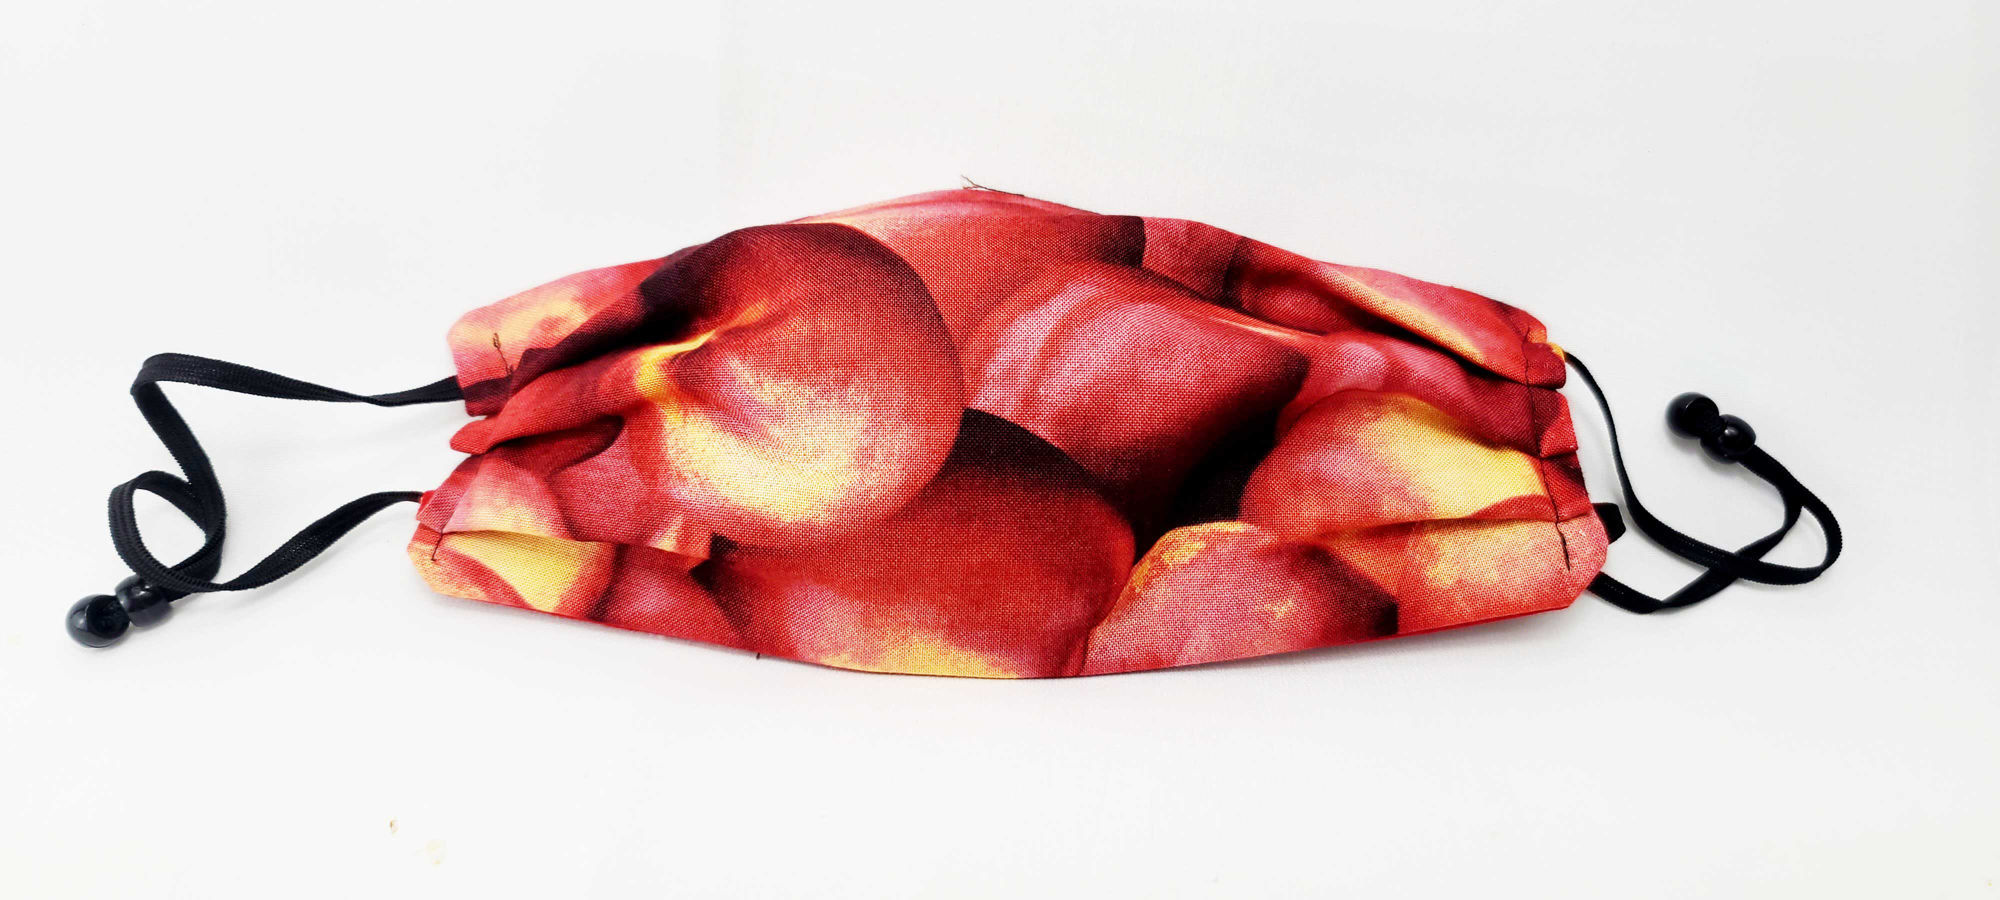 Peaches1_Front